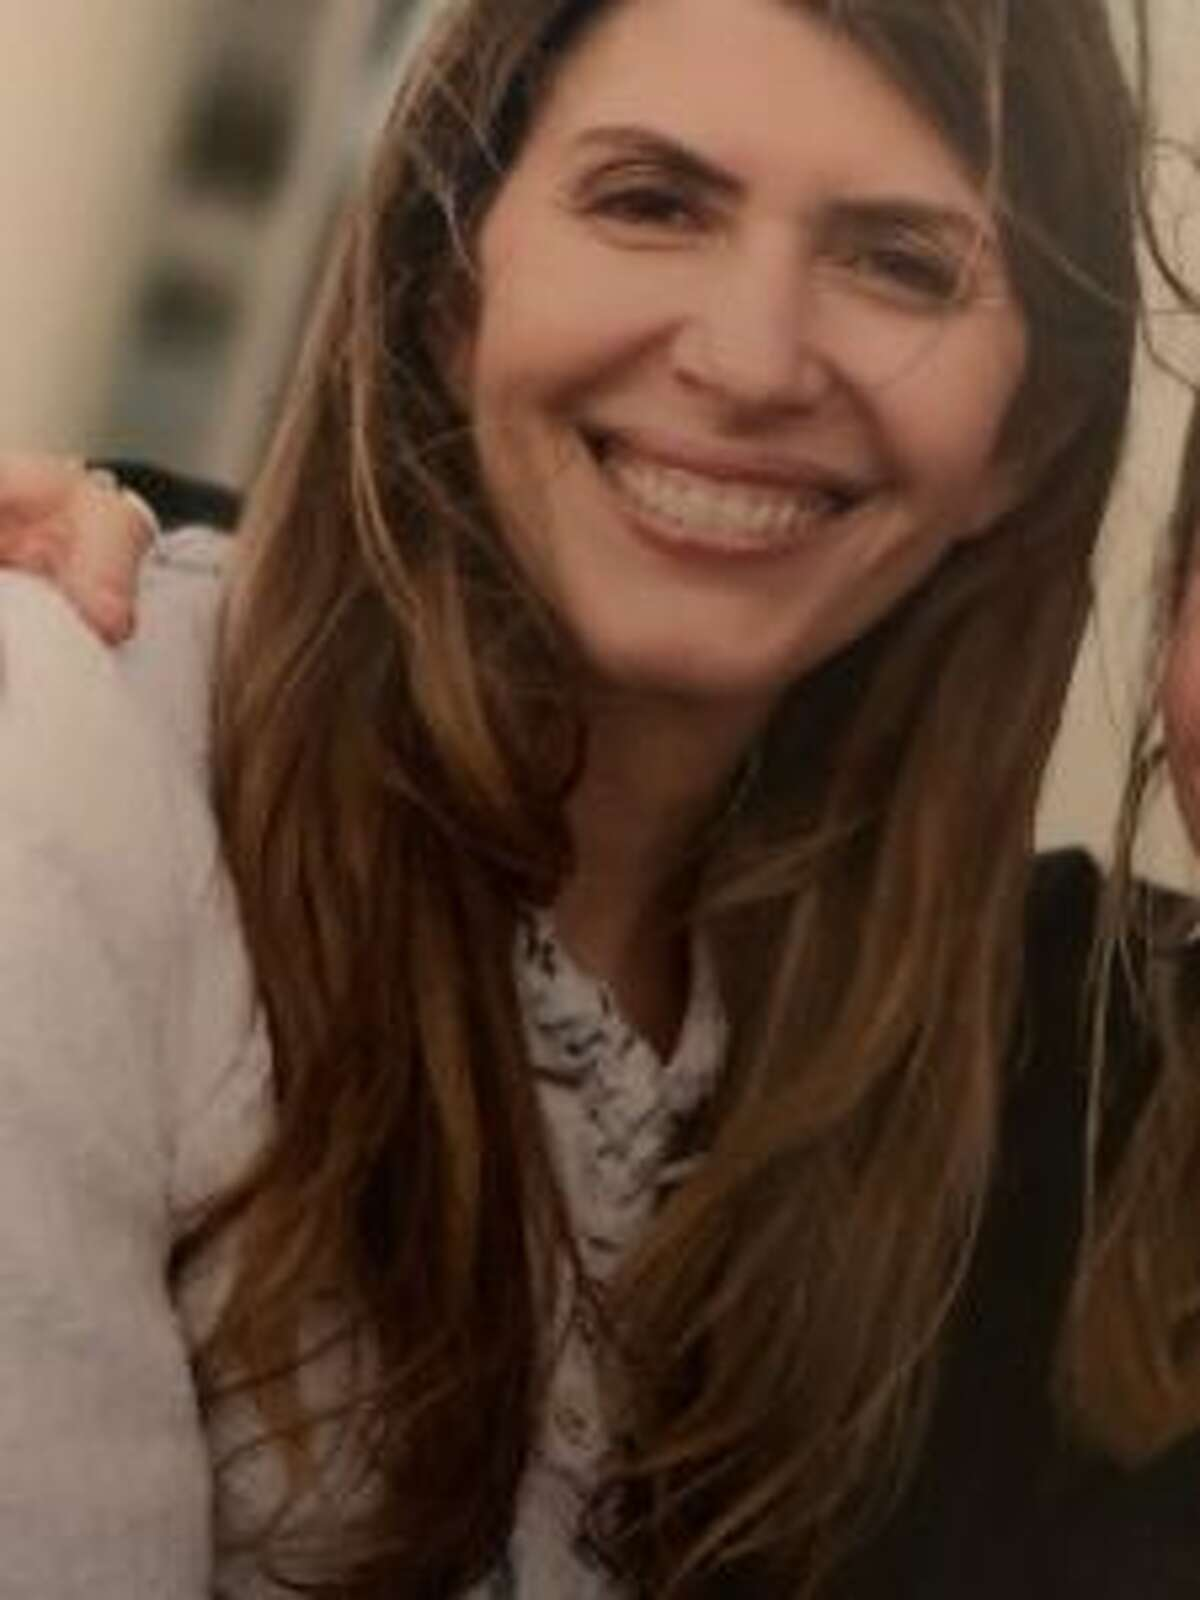 New Canaan and State police are searching for Jennifer Dulos, 50, who was reported missing Friday evening, May 24. Contributed photo